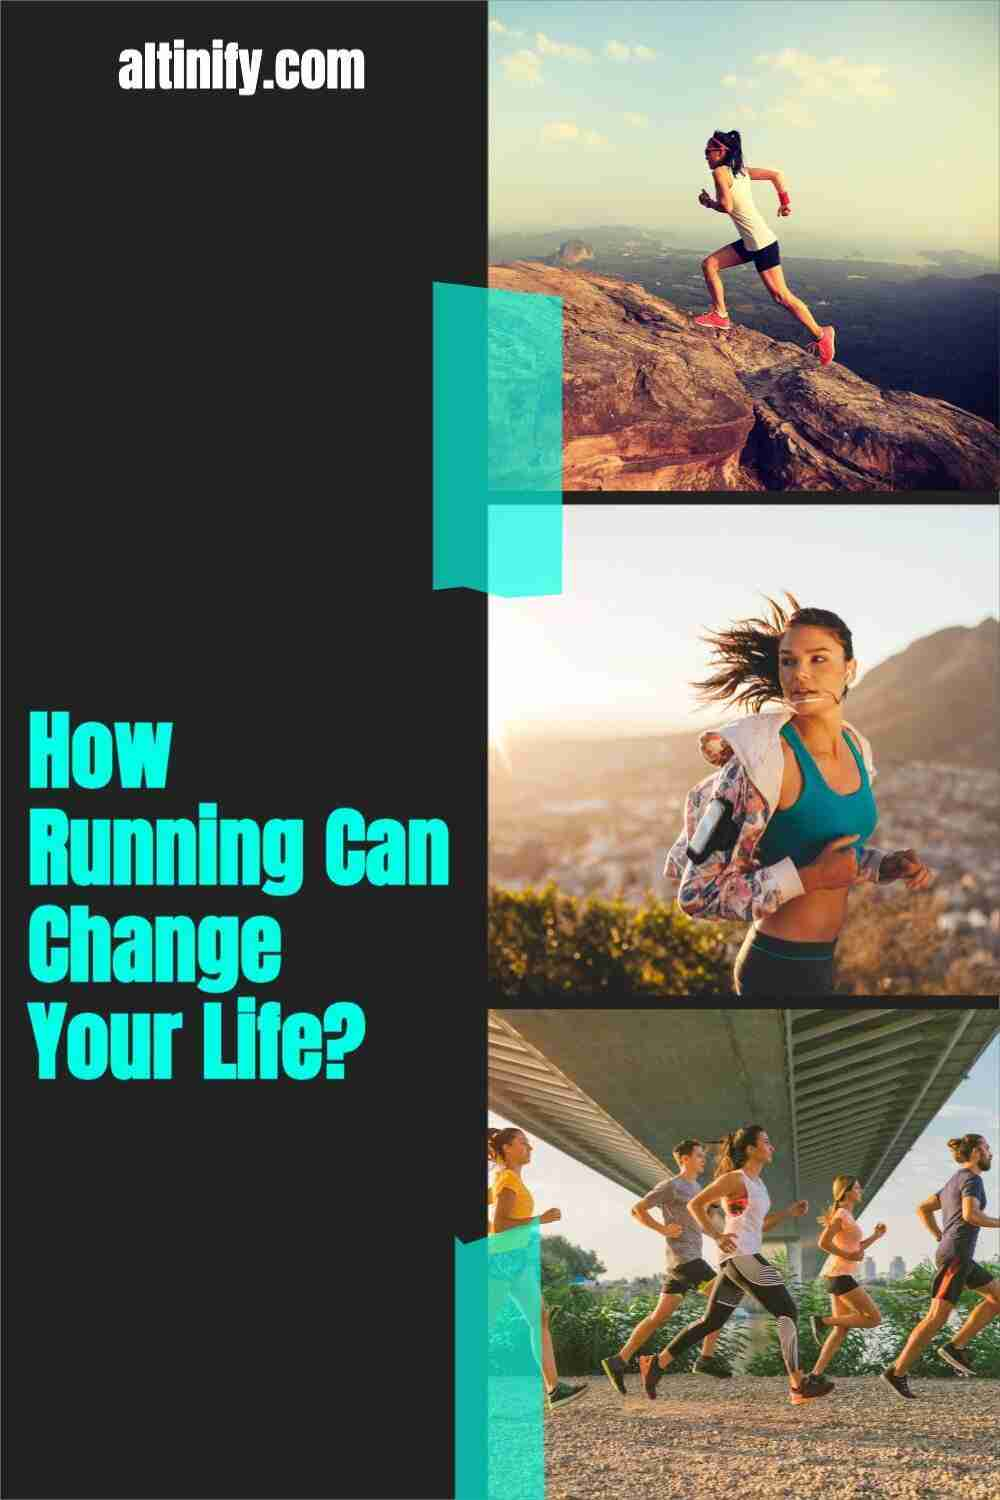 Here's How Running Can Change Your Life